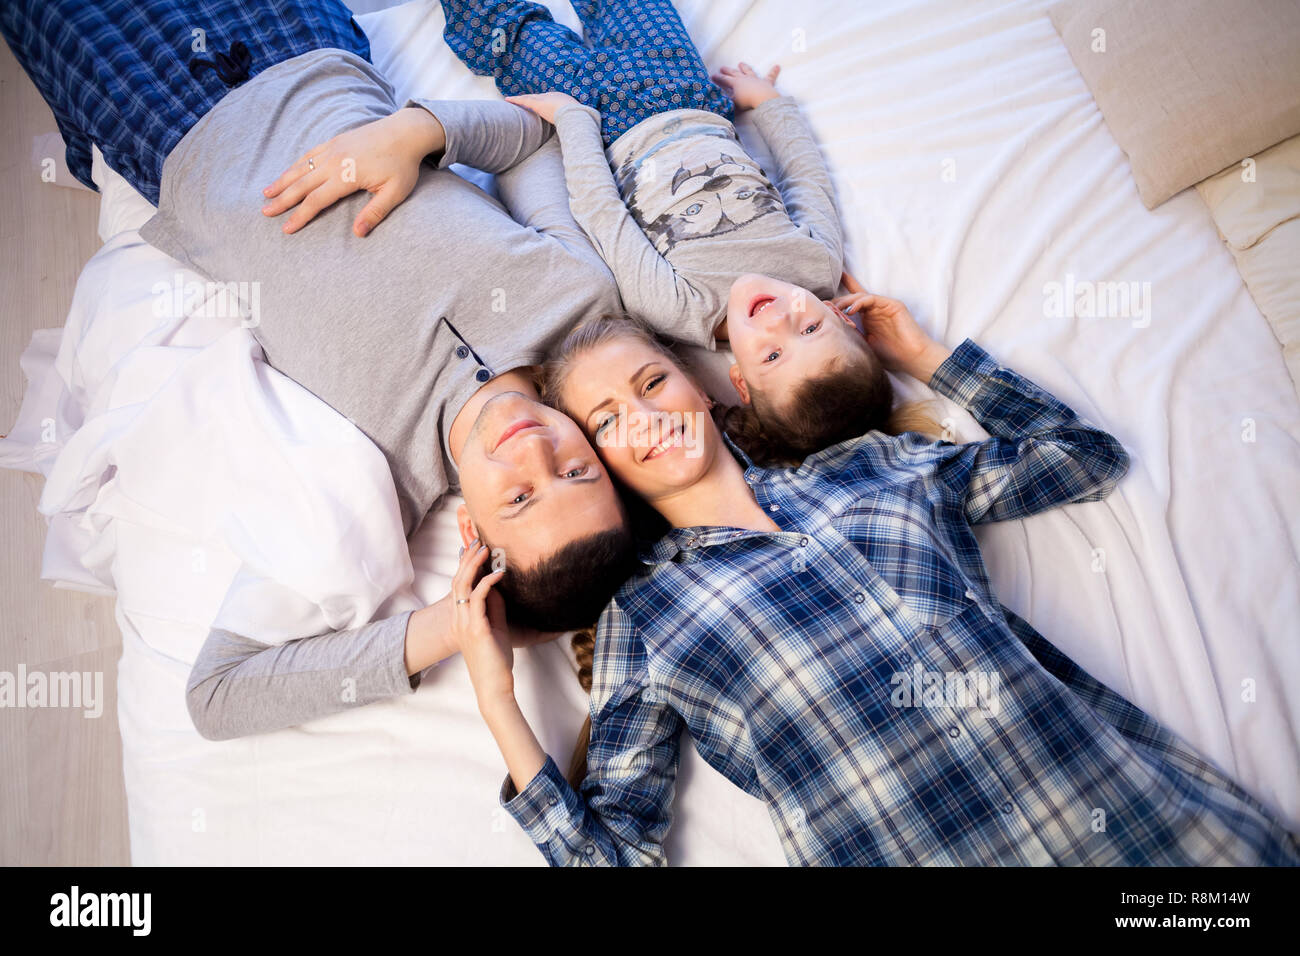 The family morning in the bedroom on the bed mom dad son